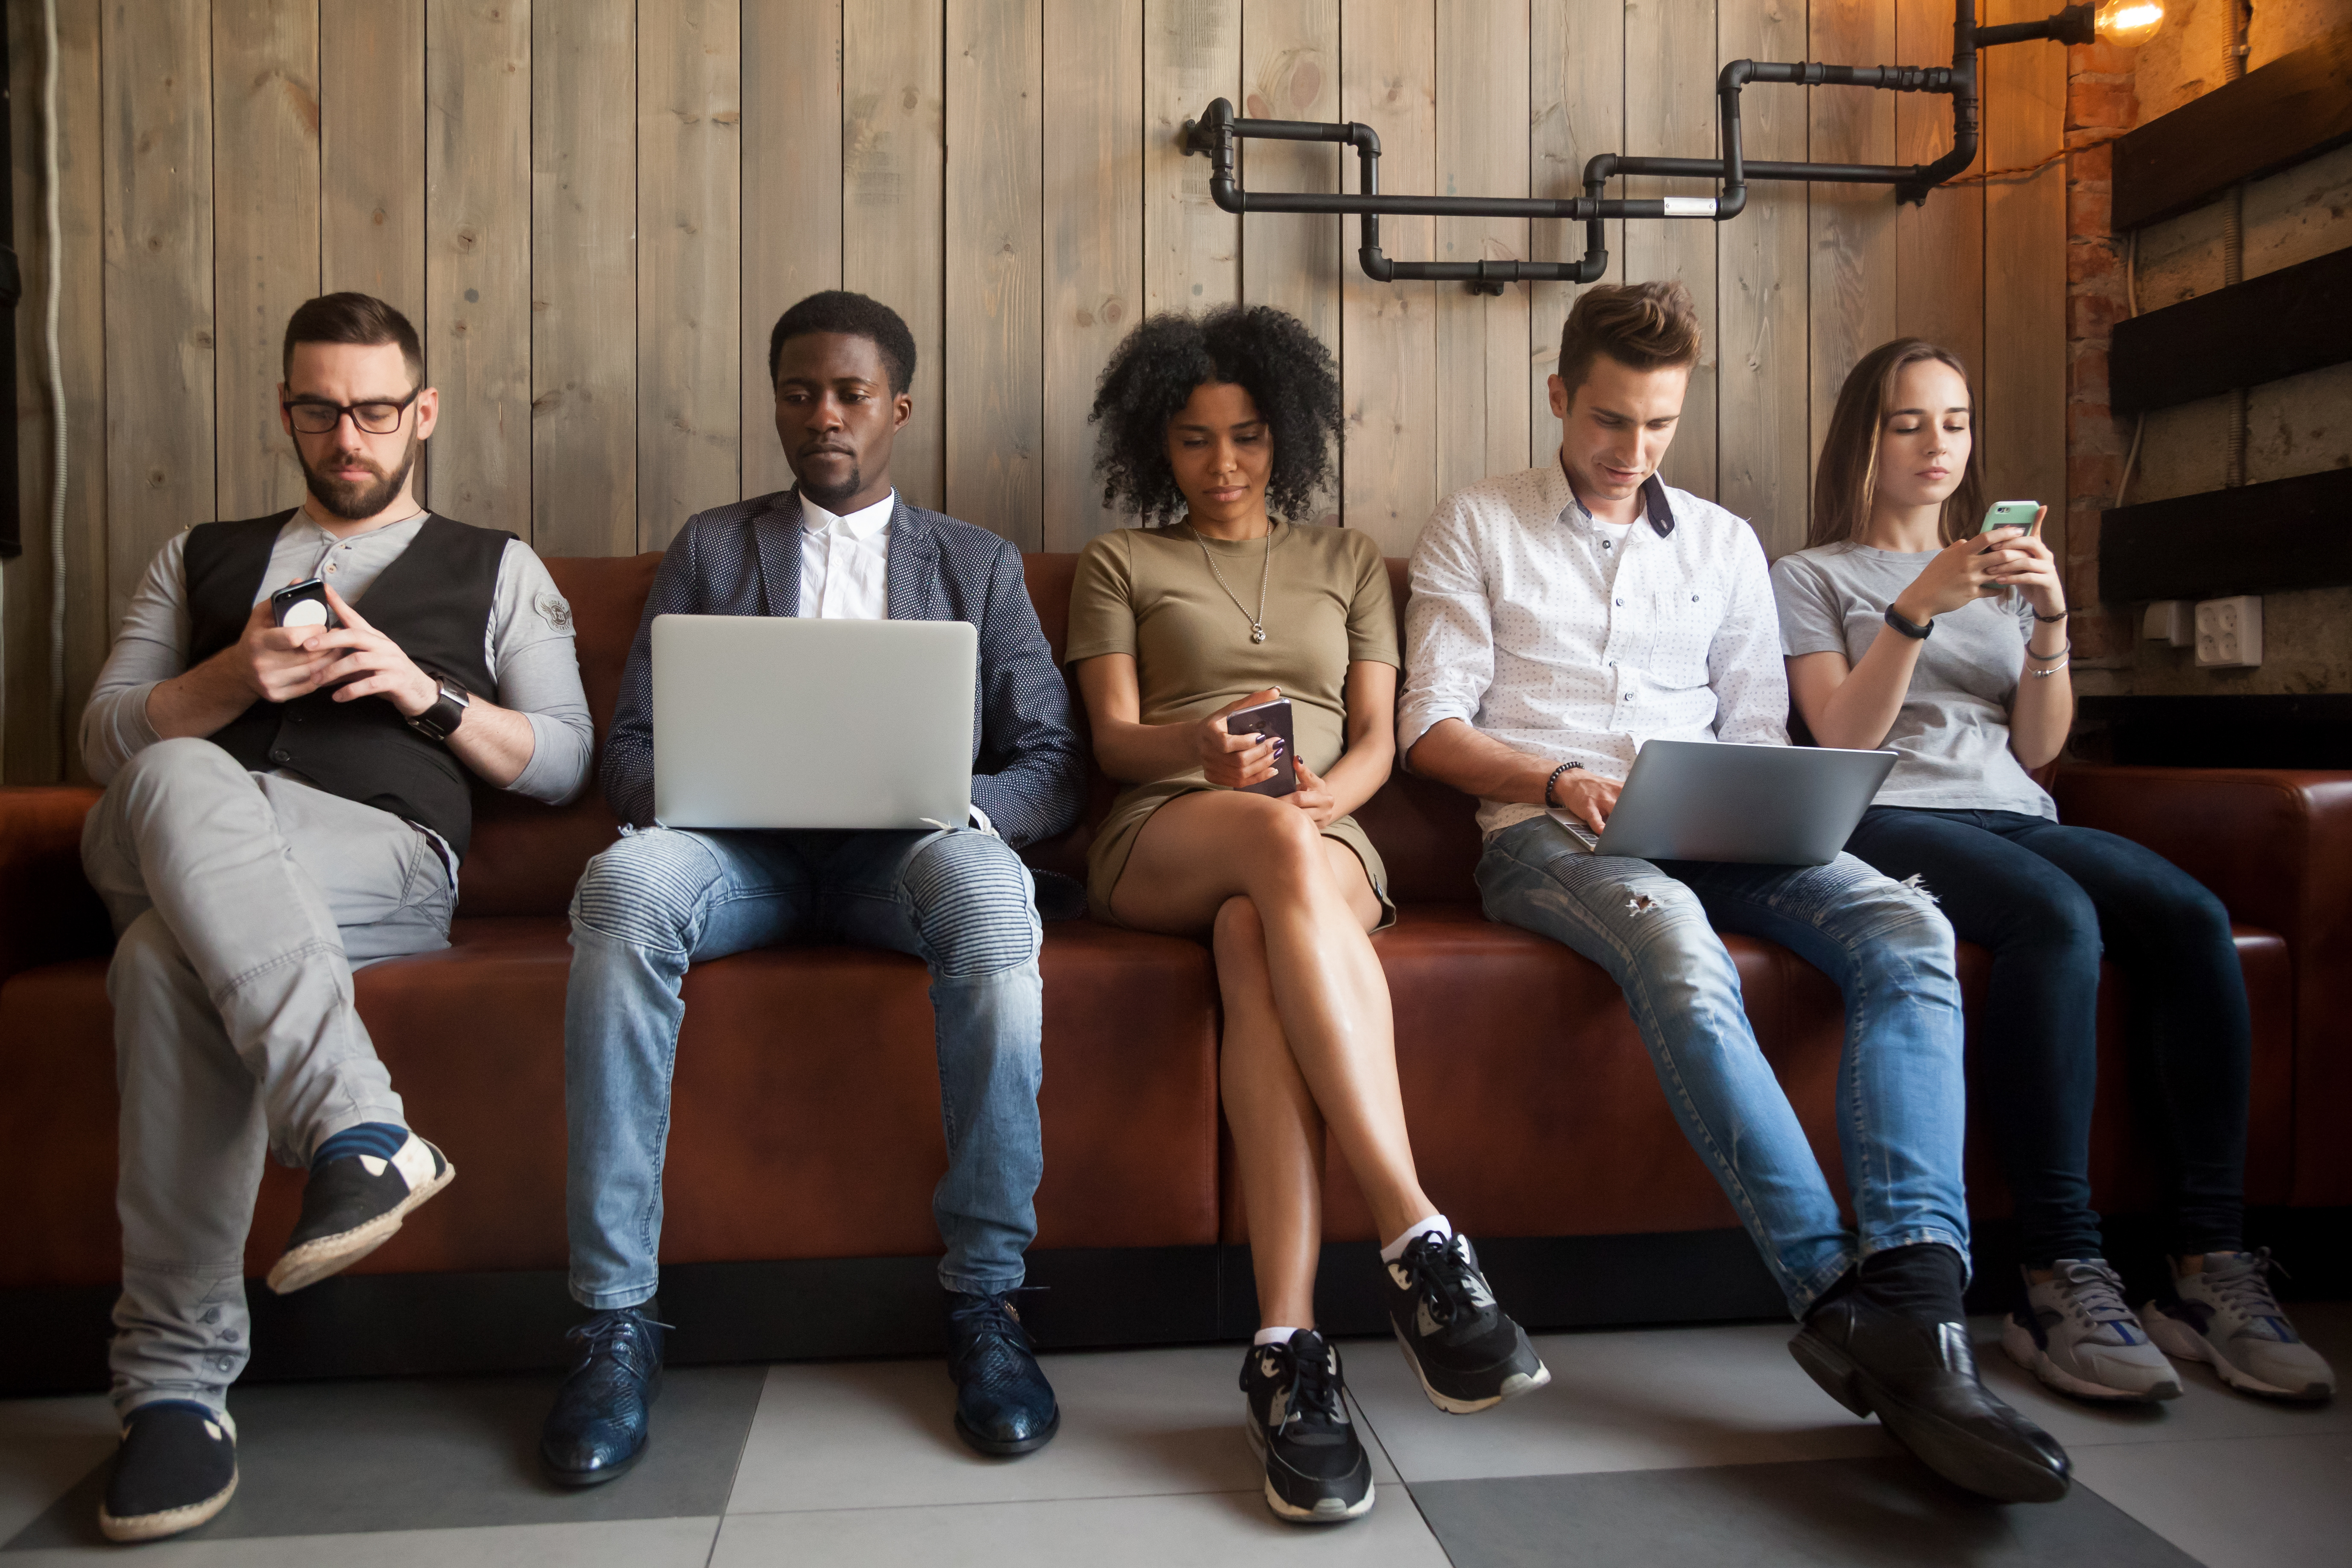 5 millennials sitting on a bench on various electronic devices such as smartphone and laptops